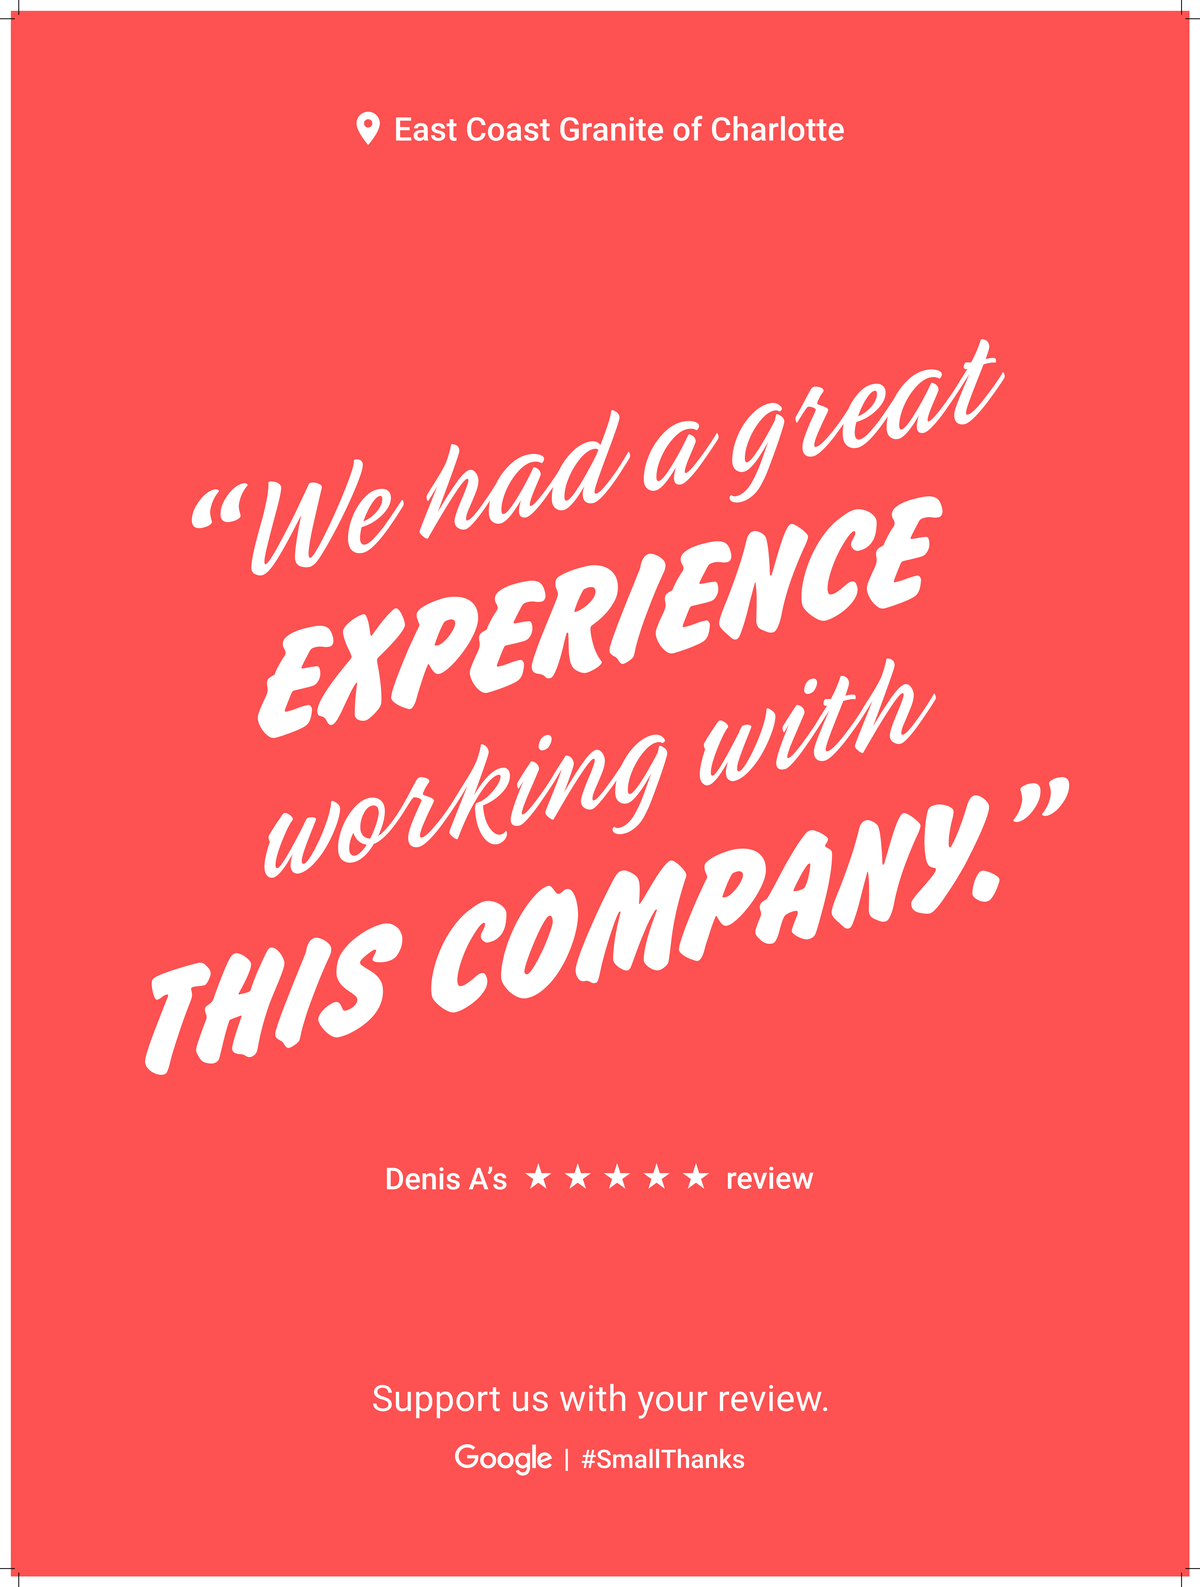 Google Review Charlotte from Denis A - We had a great experience working with this company